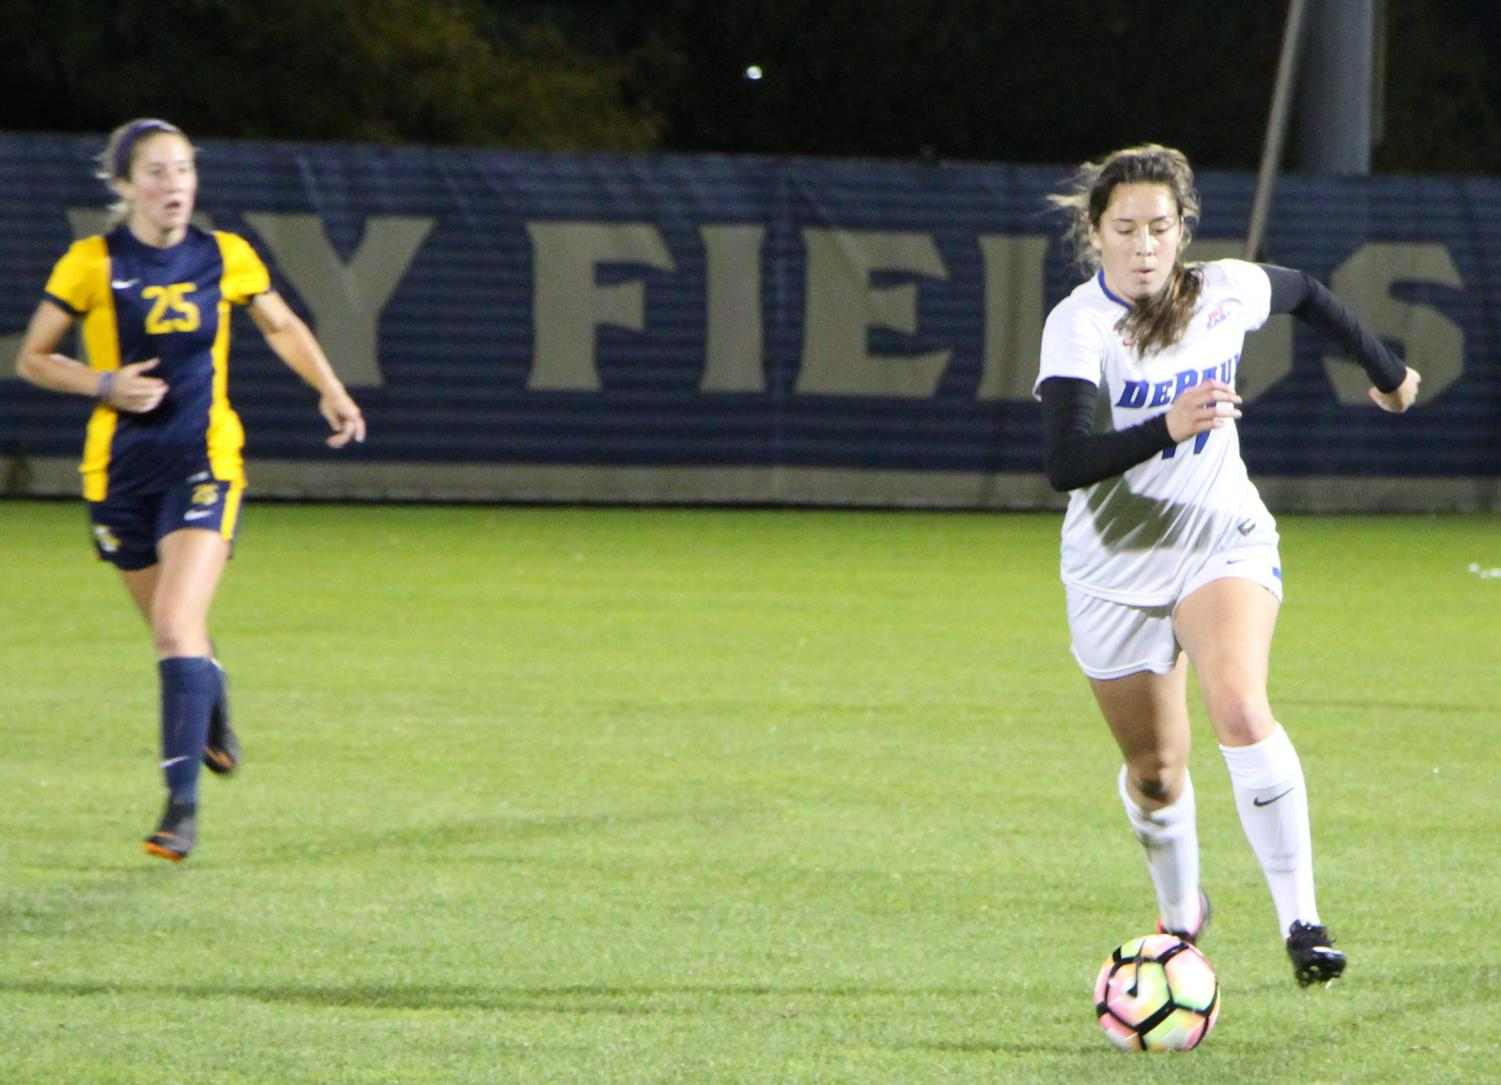 DePaul senior midfielder Madeline Frick controls the ball as Marquette senior midfielder Leah Celarek looks on during the first half of a 0-0 tie between DePaul and Marquette.  Andrew Hattersley | The DePaulia